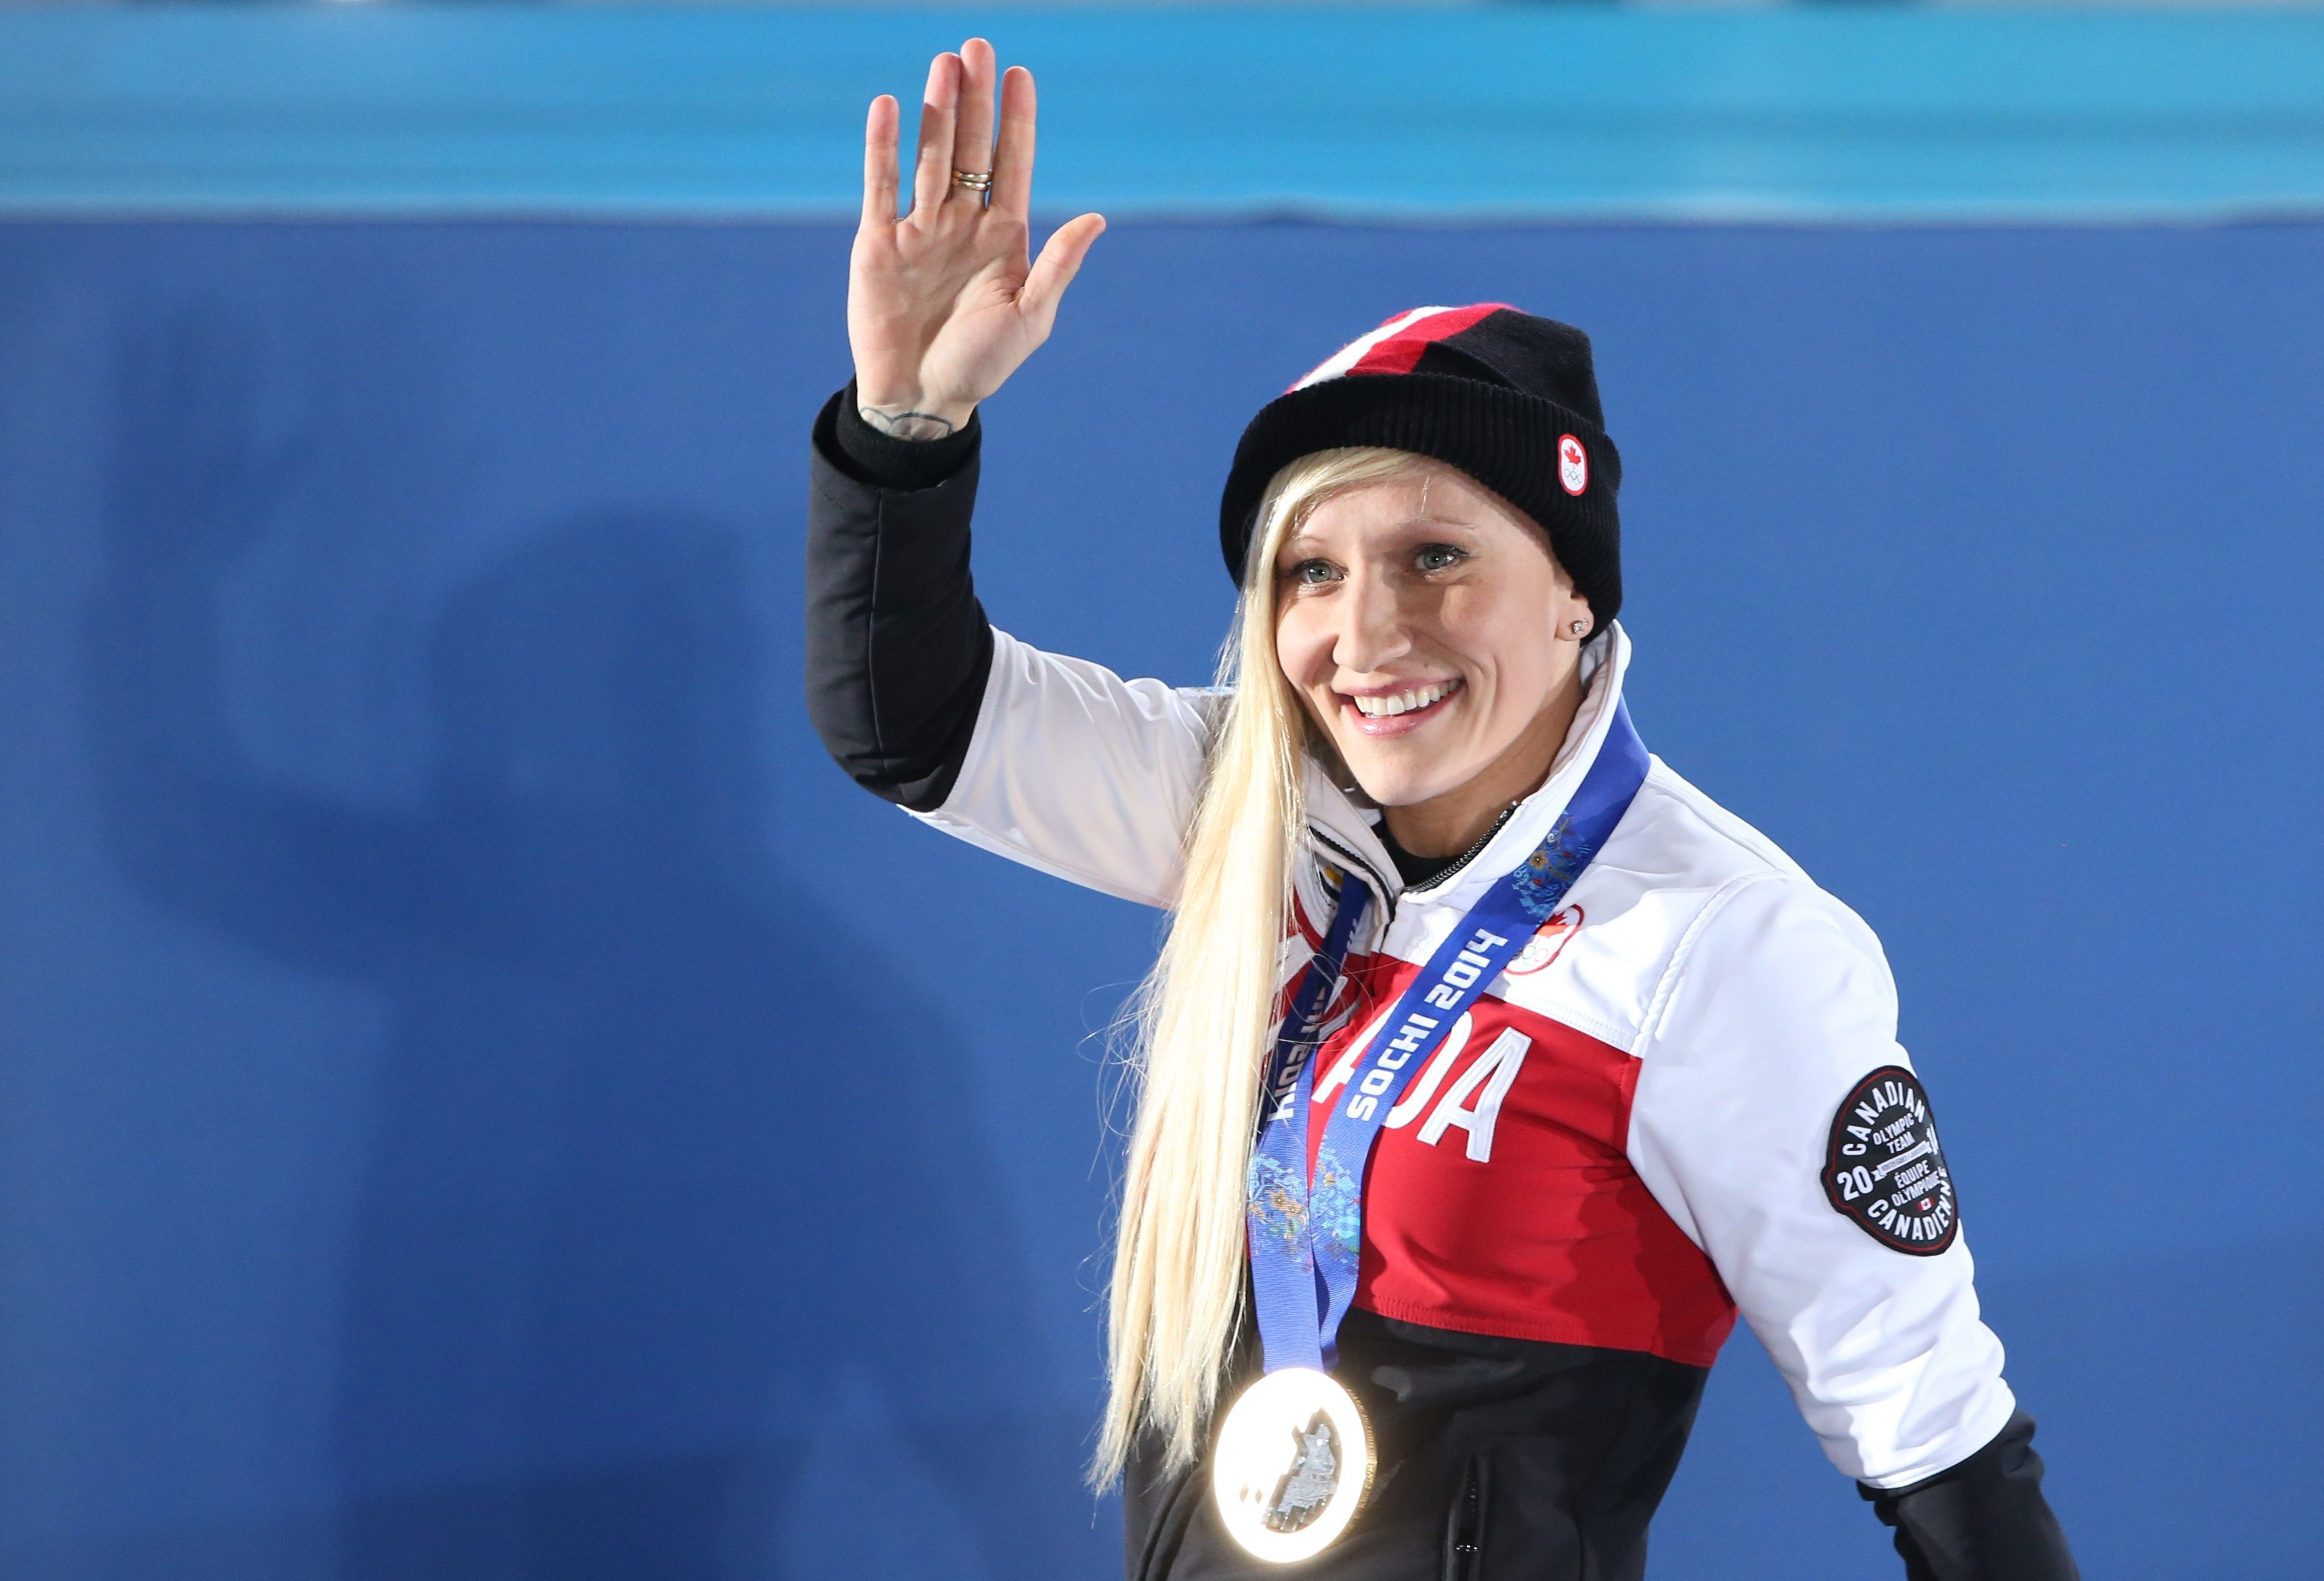 Bobsled champ Kaillie Humphries takes dispute with Canadian team to national sport resolution body